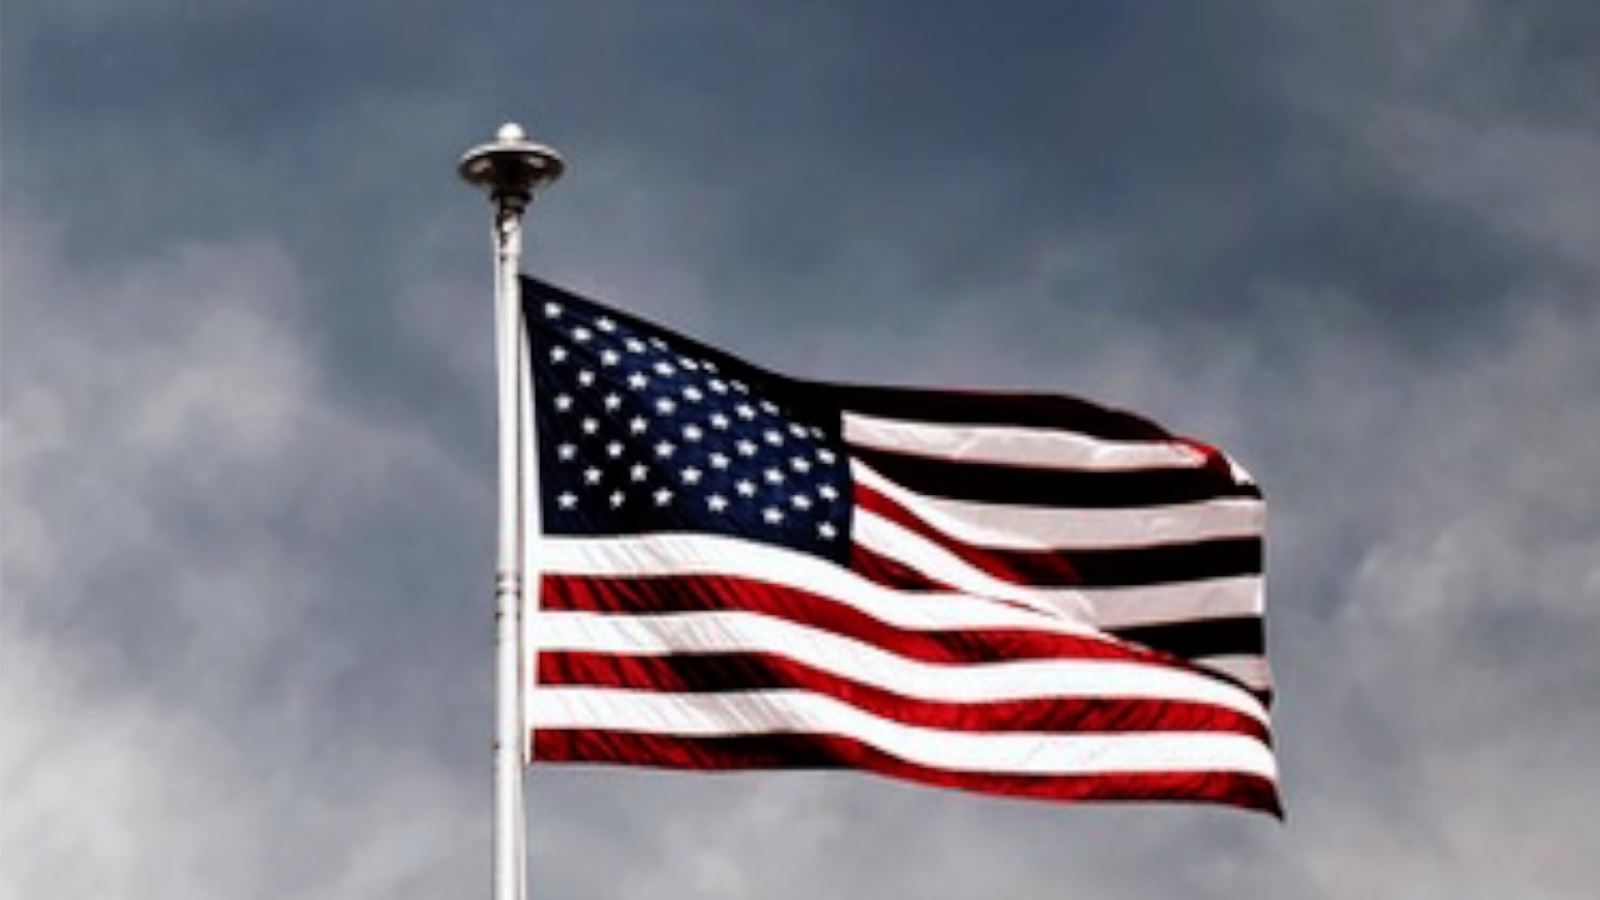 American Flag on Flagpole Linking to Nov 23 Flagpole Youtube Video